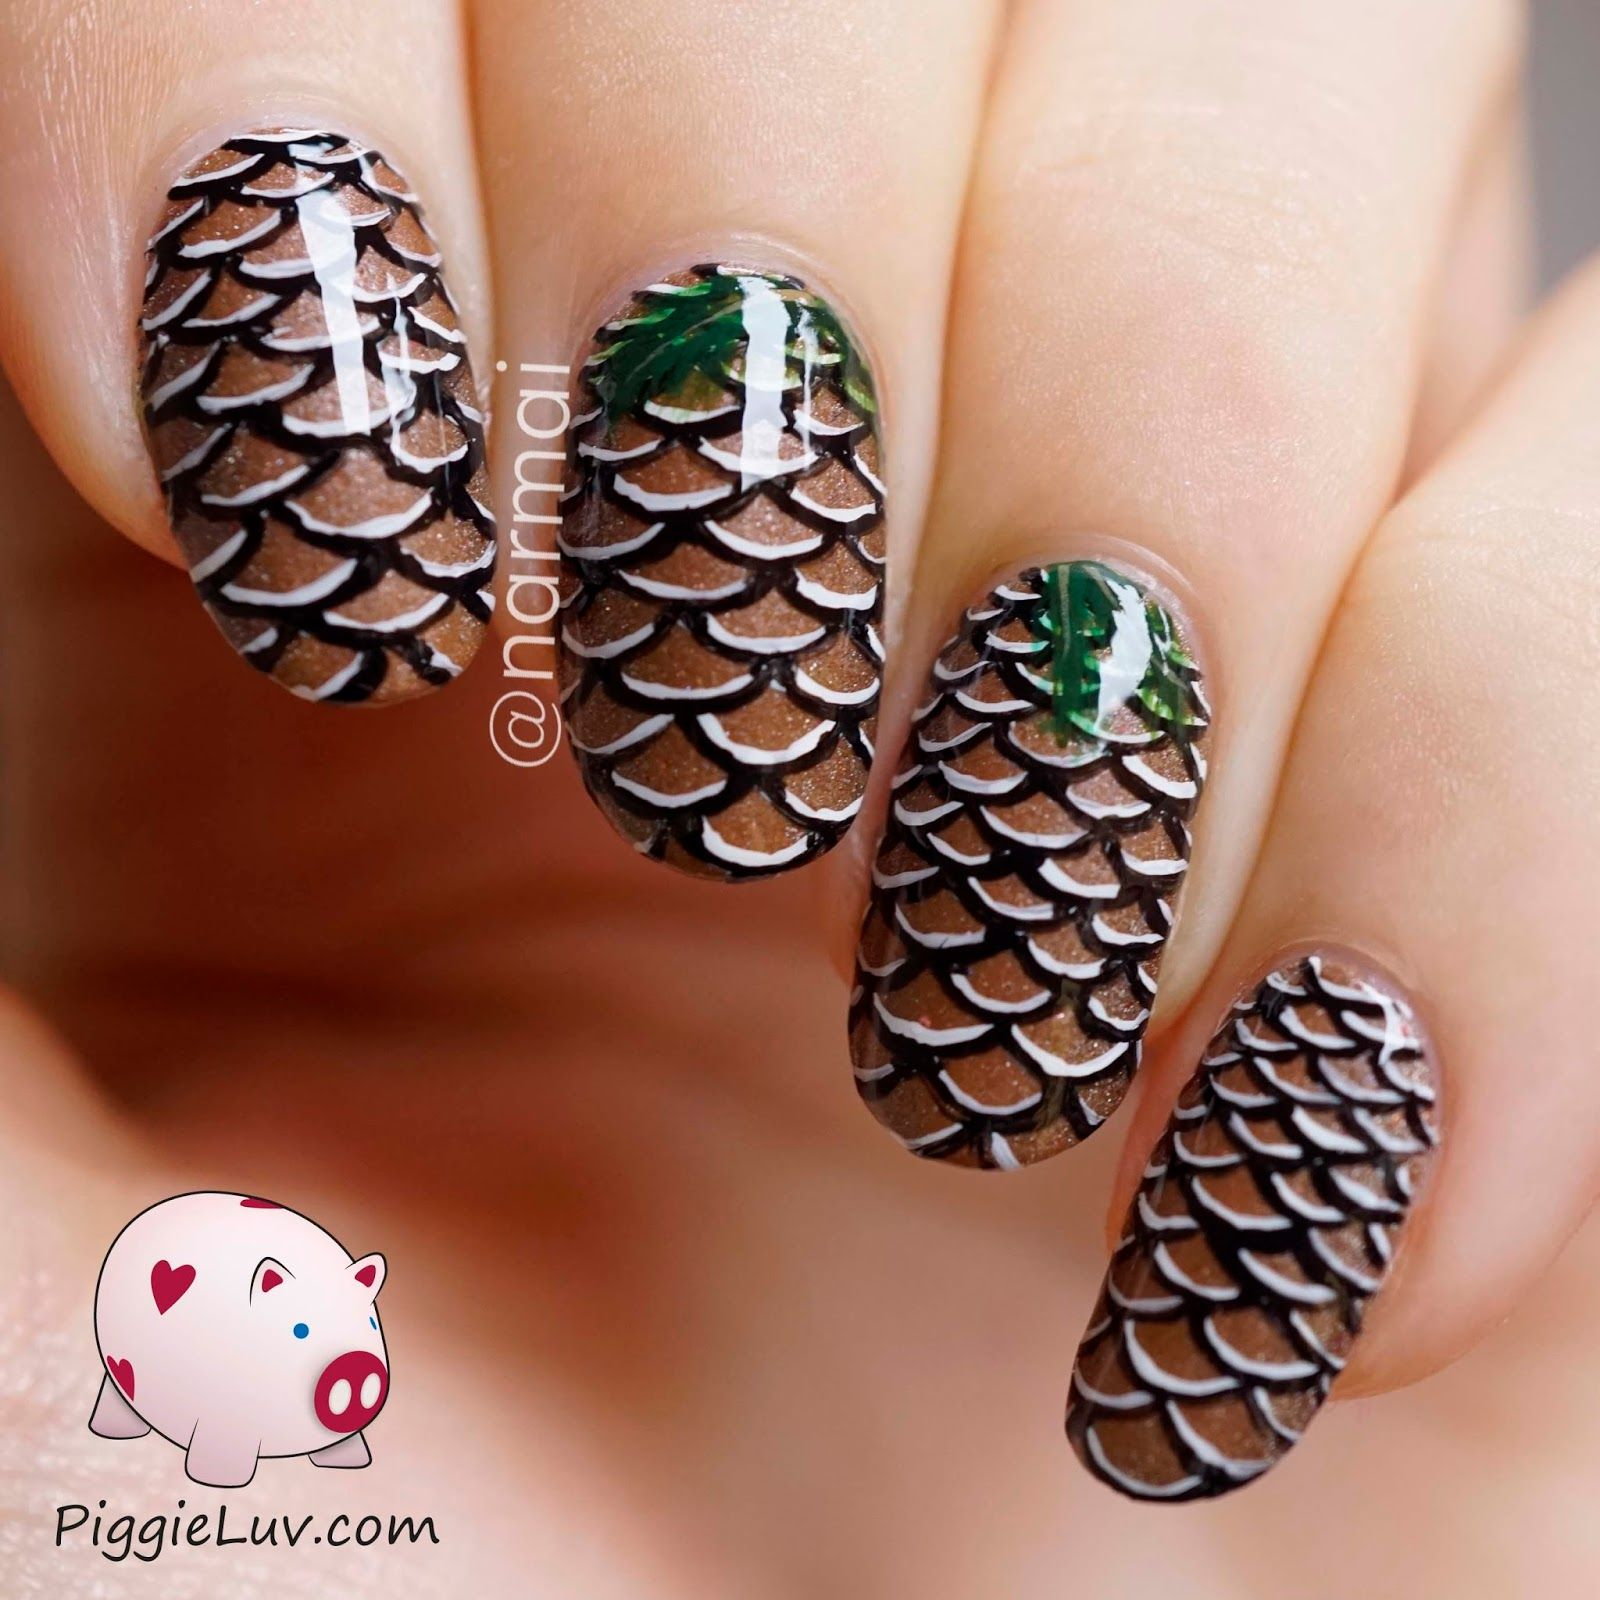 Pine cone nail art video tutorial pine cone pine and tutorials nail art videos prinsesfo Choice Image